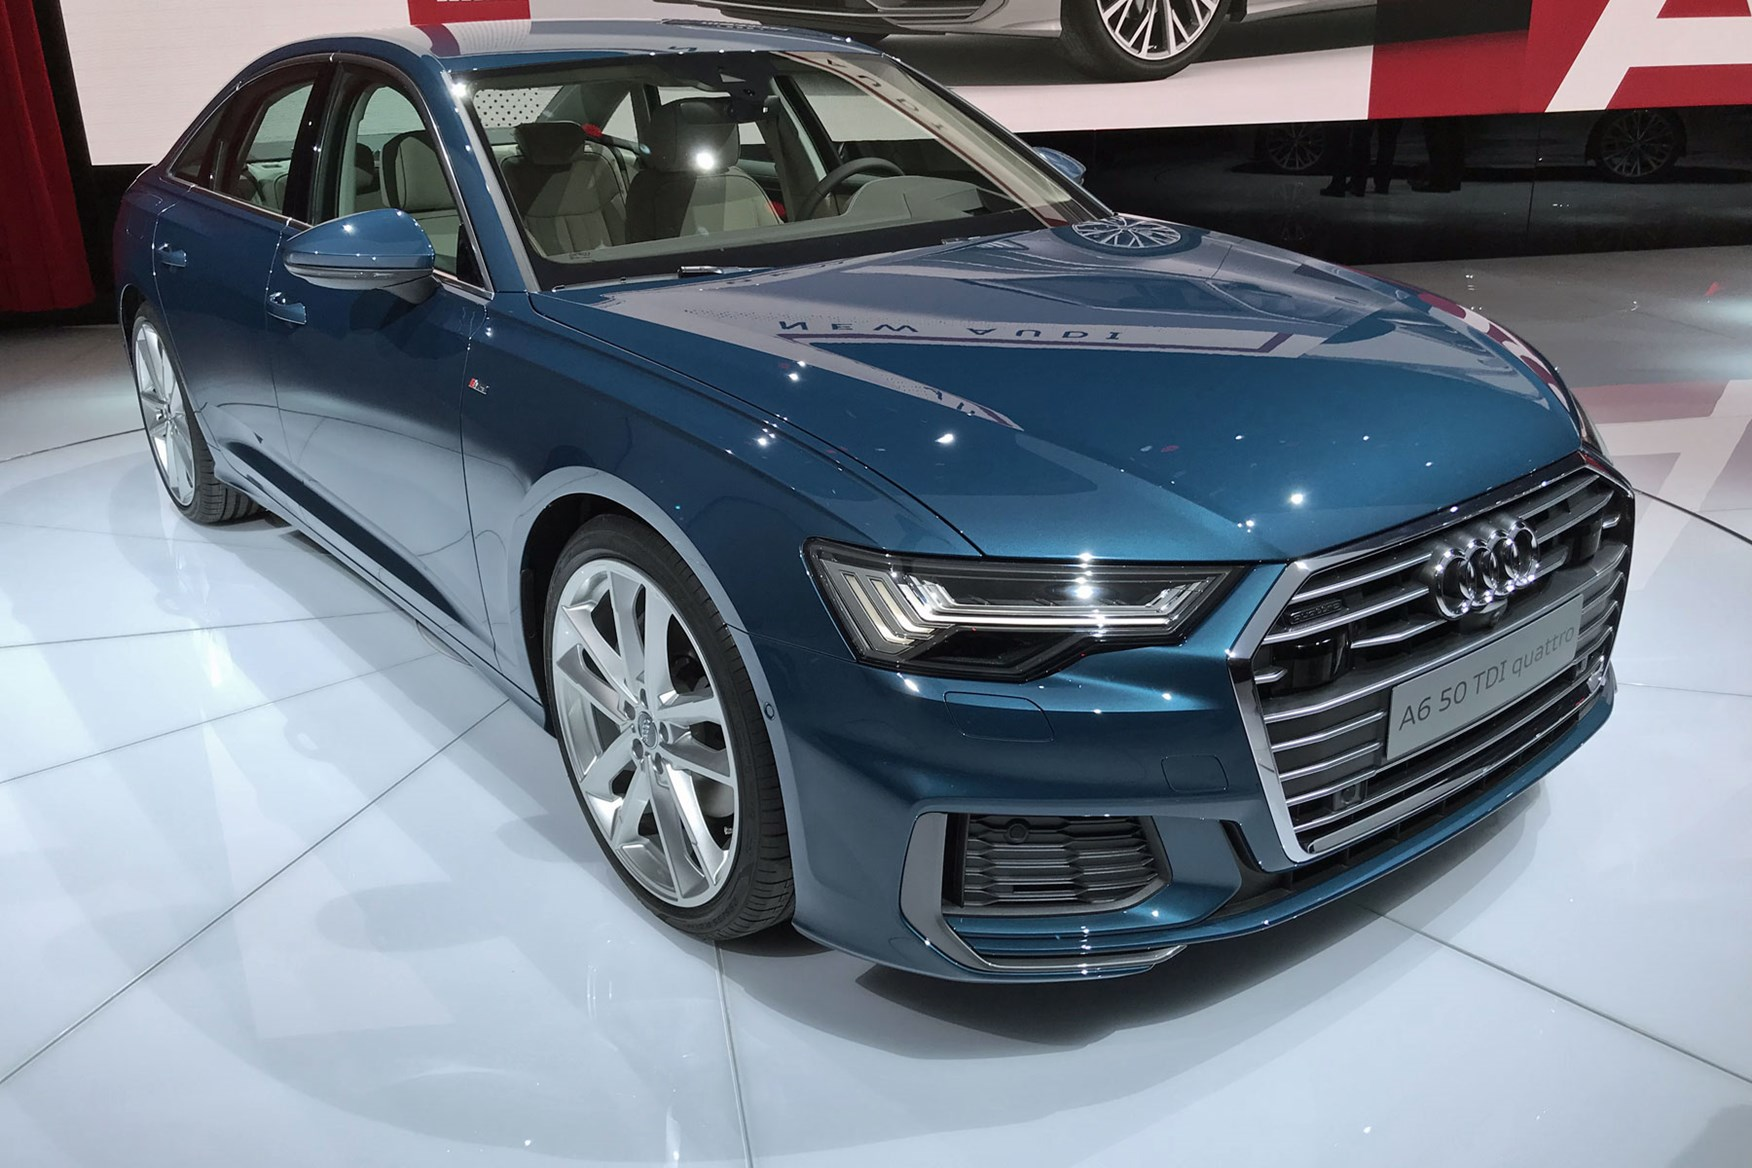 audi a6 saloon 2018 interior price and release date car magazine. Black Bedroom Furniture Sets. Home Design Ideas